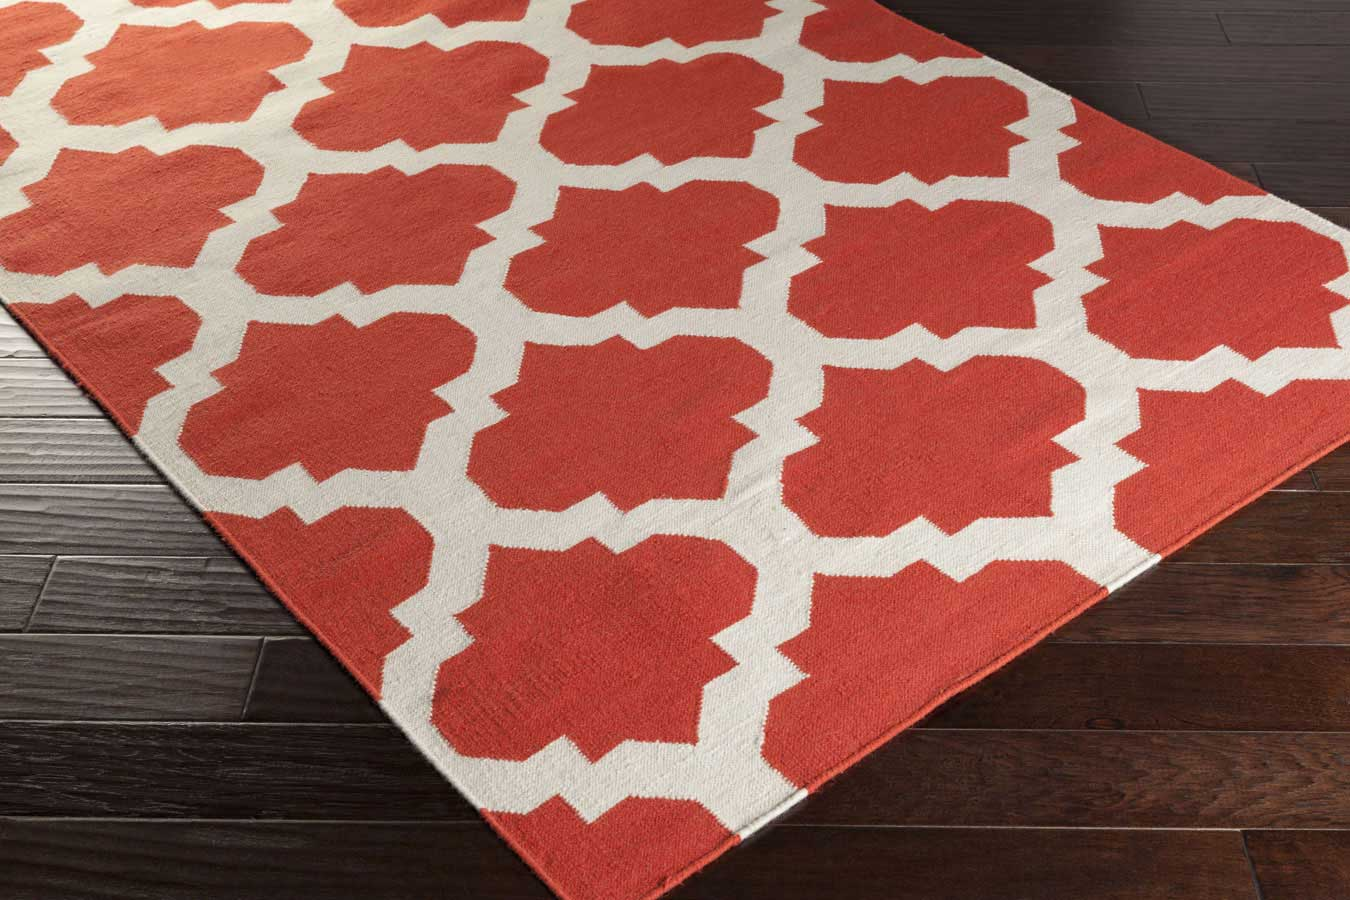 Lovely Weavers York Harlow AWHD1030 Coral/White Area Rug Payless Rugs